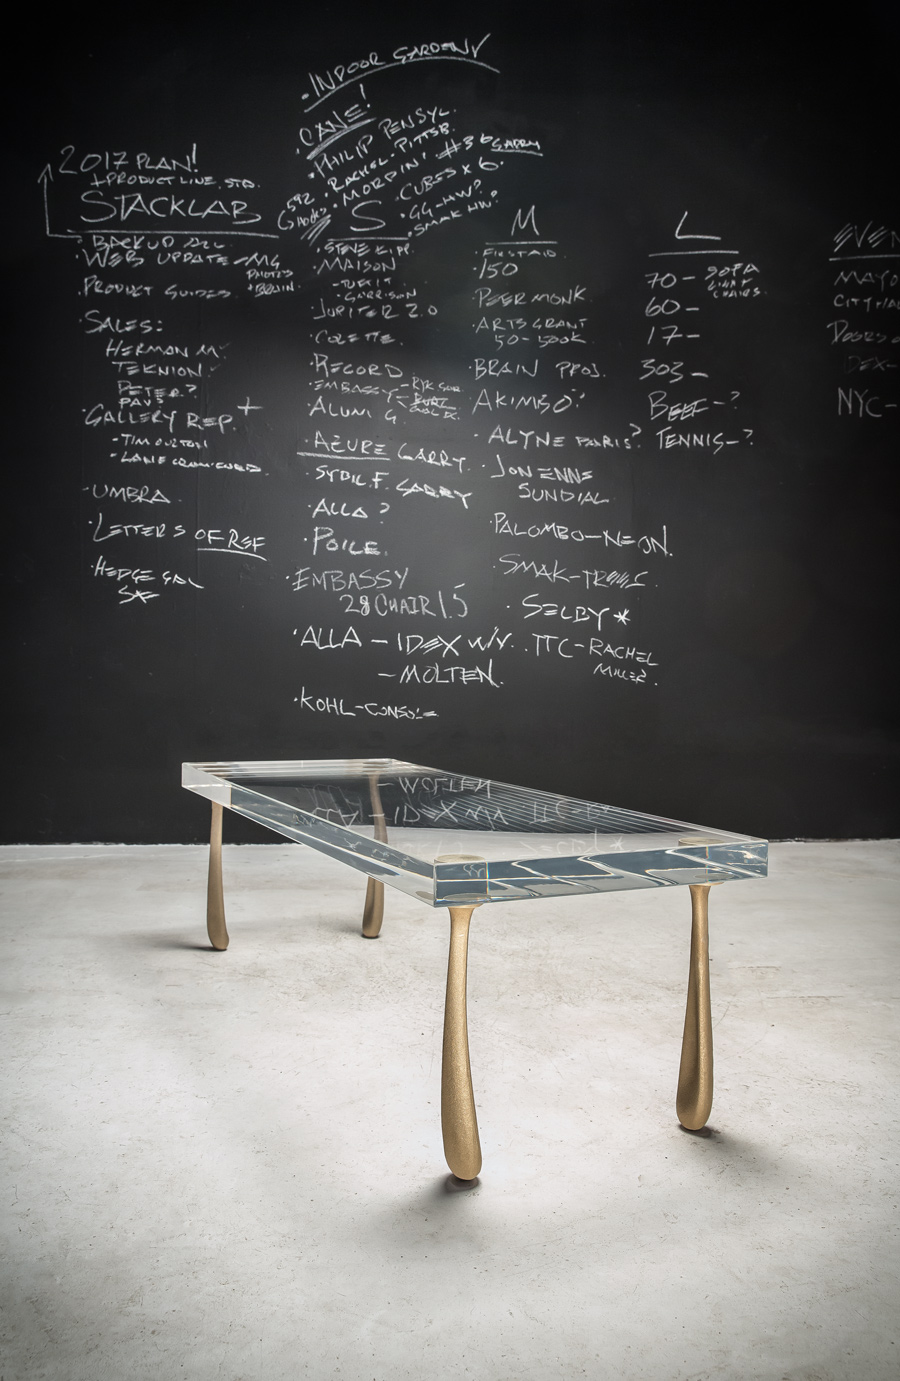 stacklab-design-custom-coffee-table-acrylic-bronze-cast-UV-made-to-order-toronto.jpg